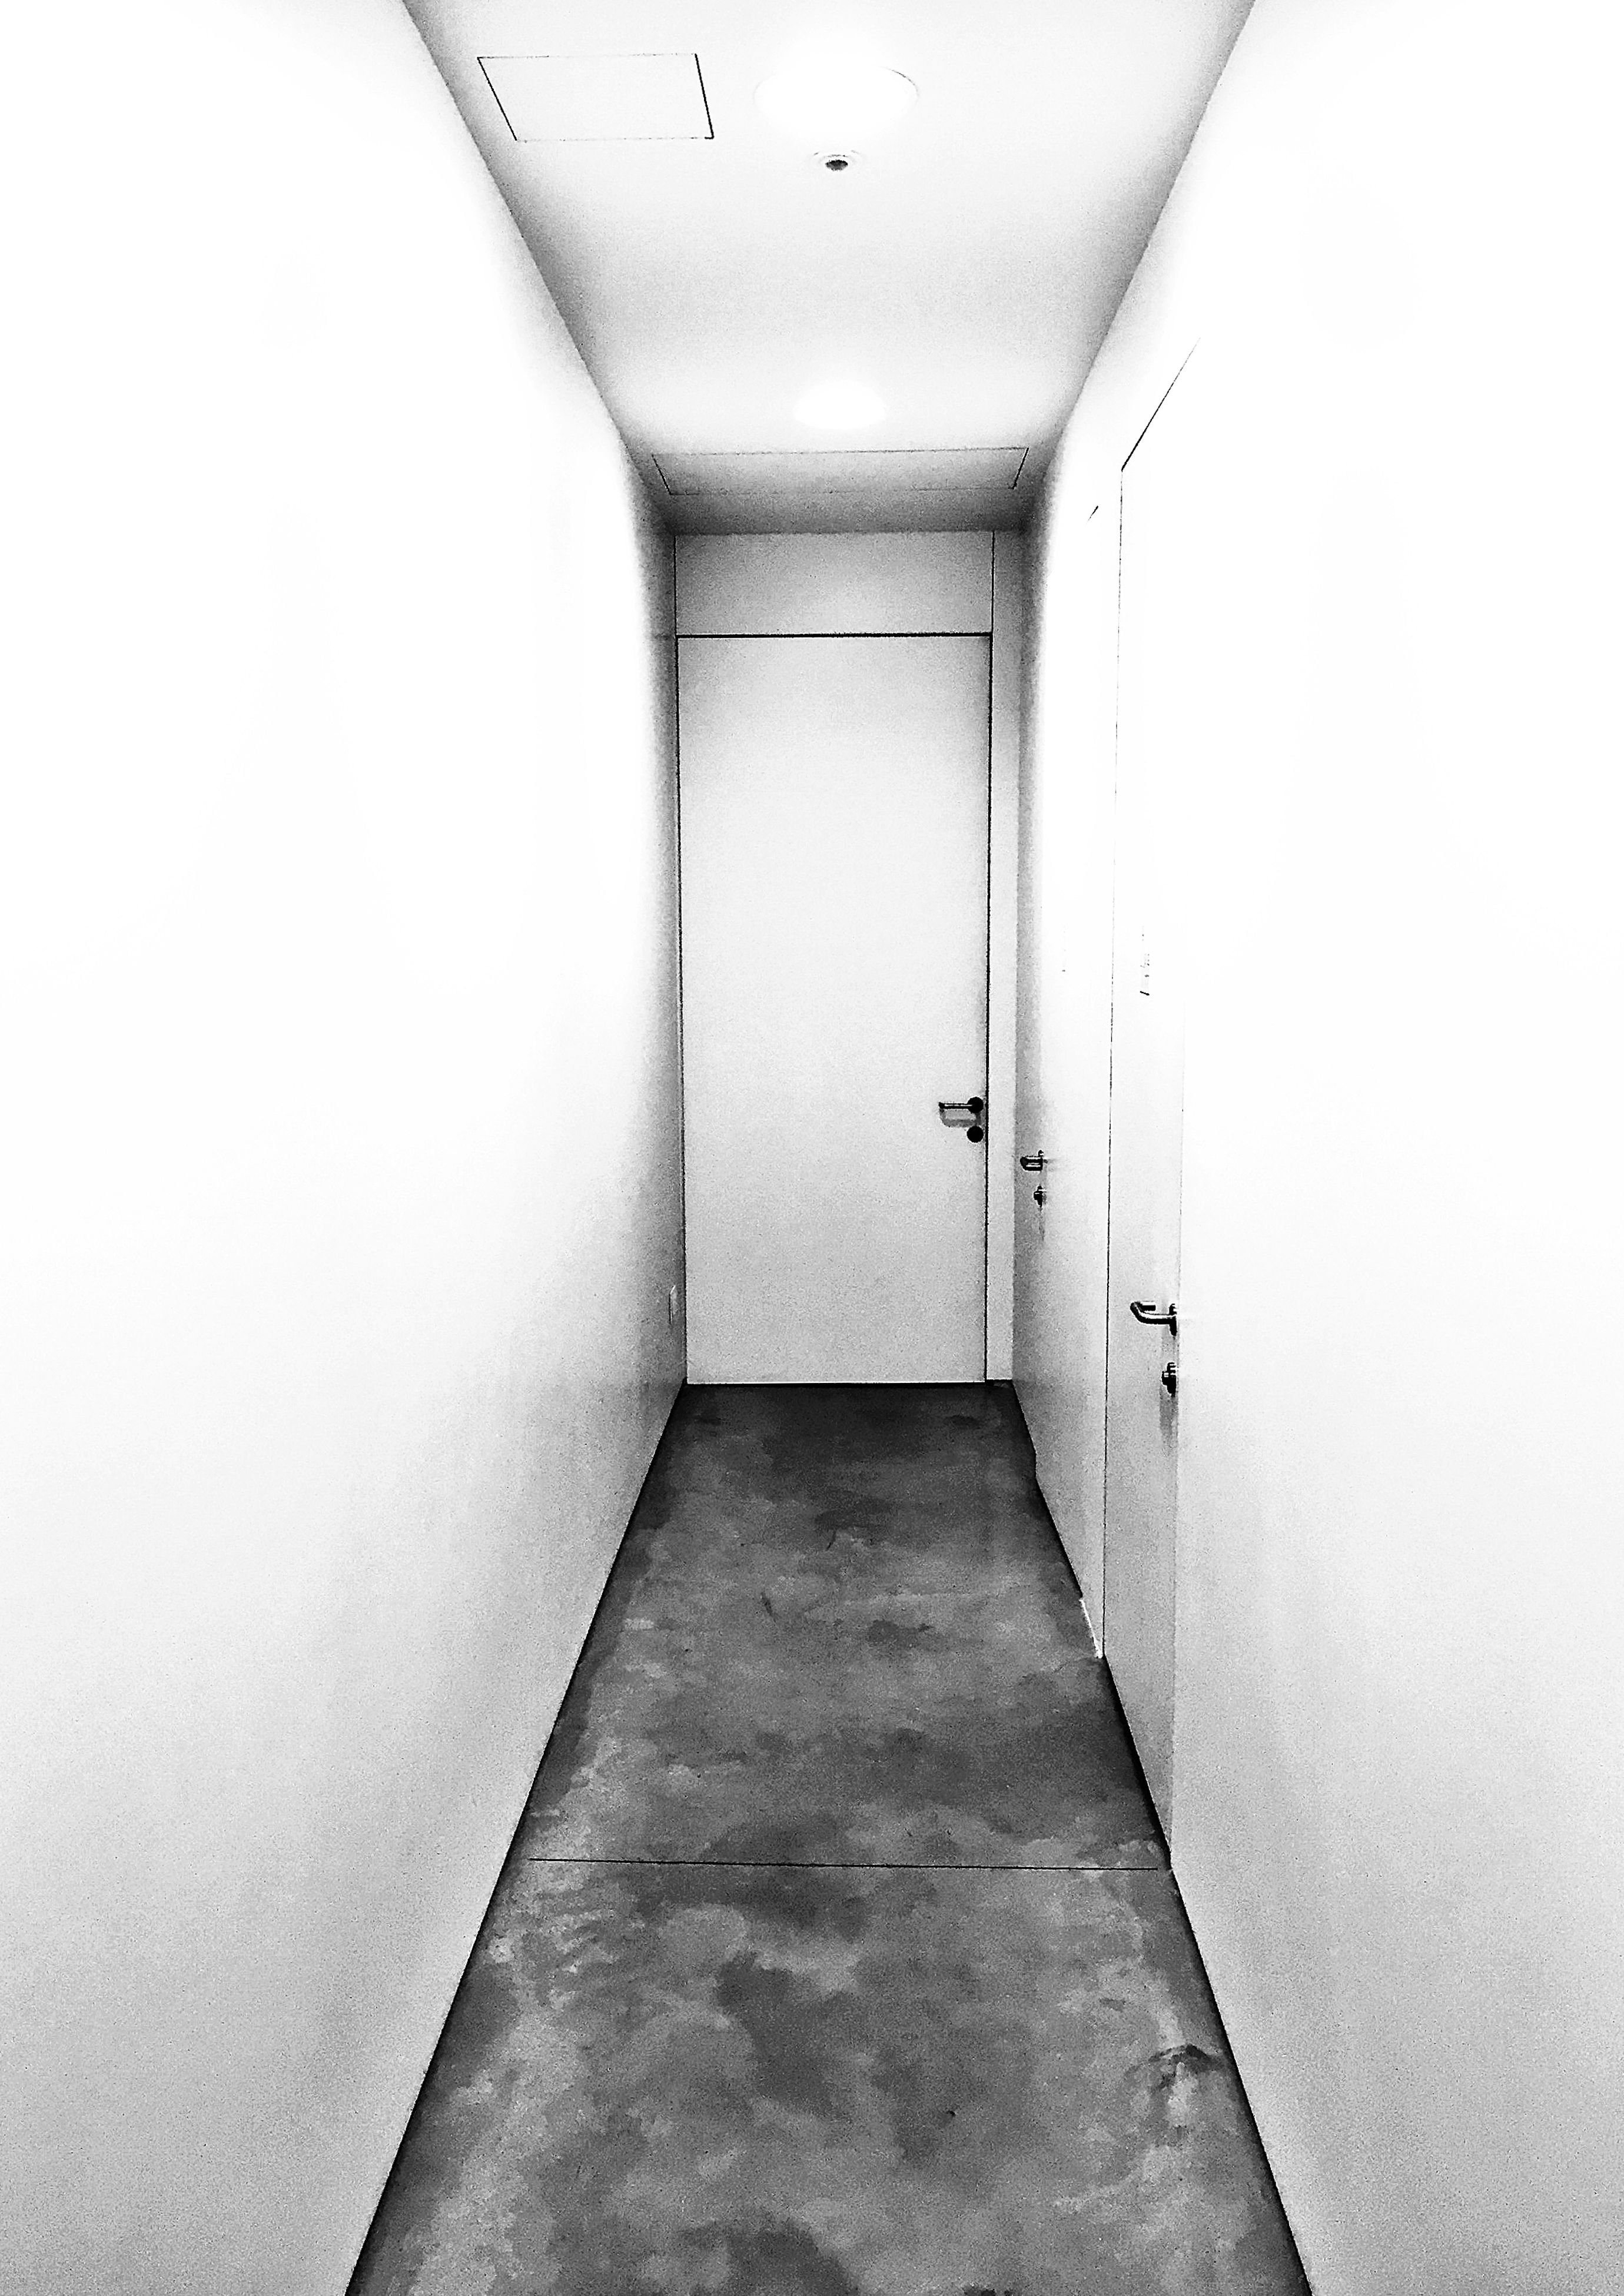 indoors, the way forward, architecture, corridor, built structure, diminishing perspective, wall - building feature, empty, ceiling, vanishing point, wall, absence, building, no people, lighting equipment, narrow, flooring, copy space, day, tiled floor